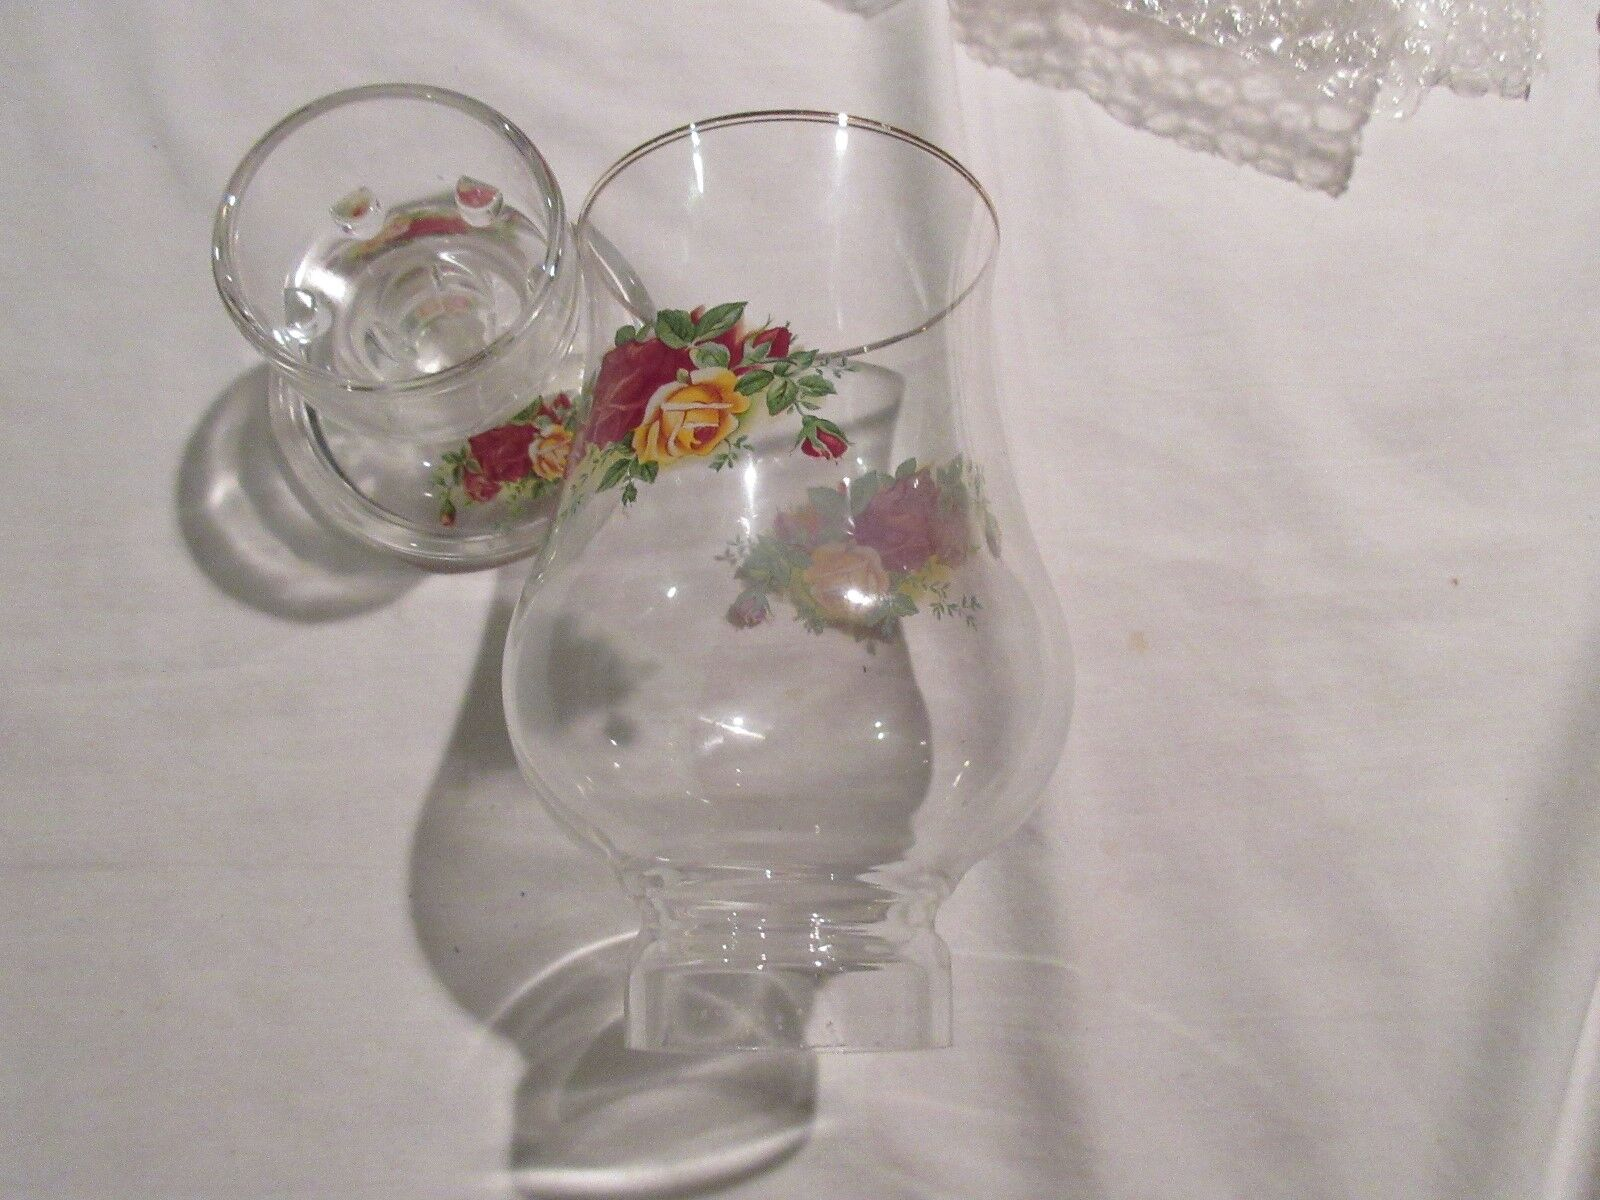 Glass, Decorative Glass In Stand, Floral Arrangement On